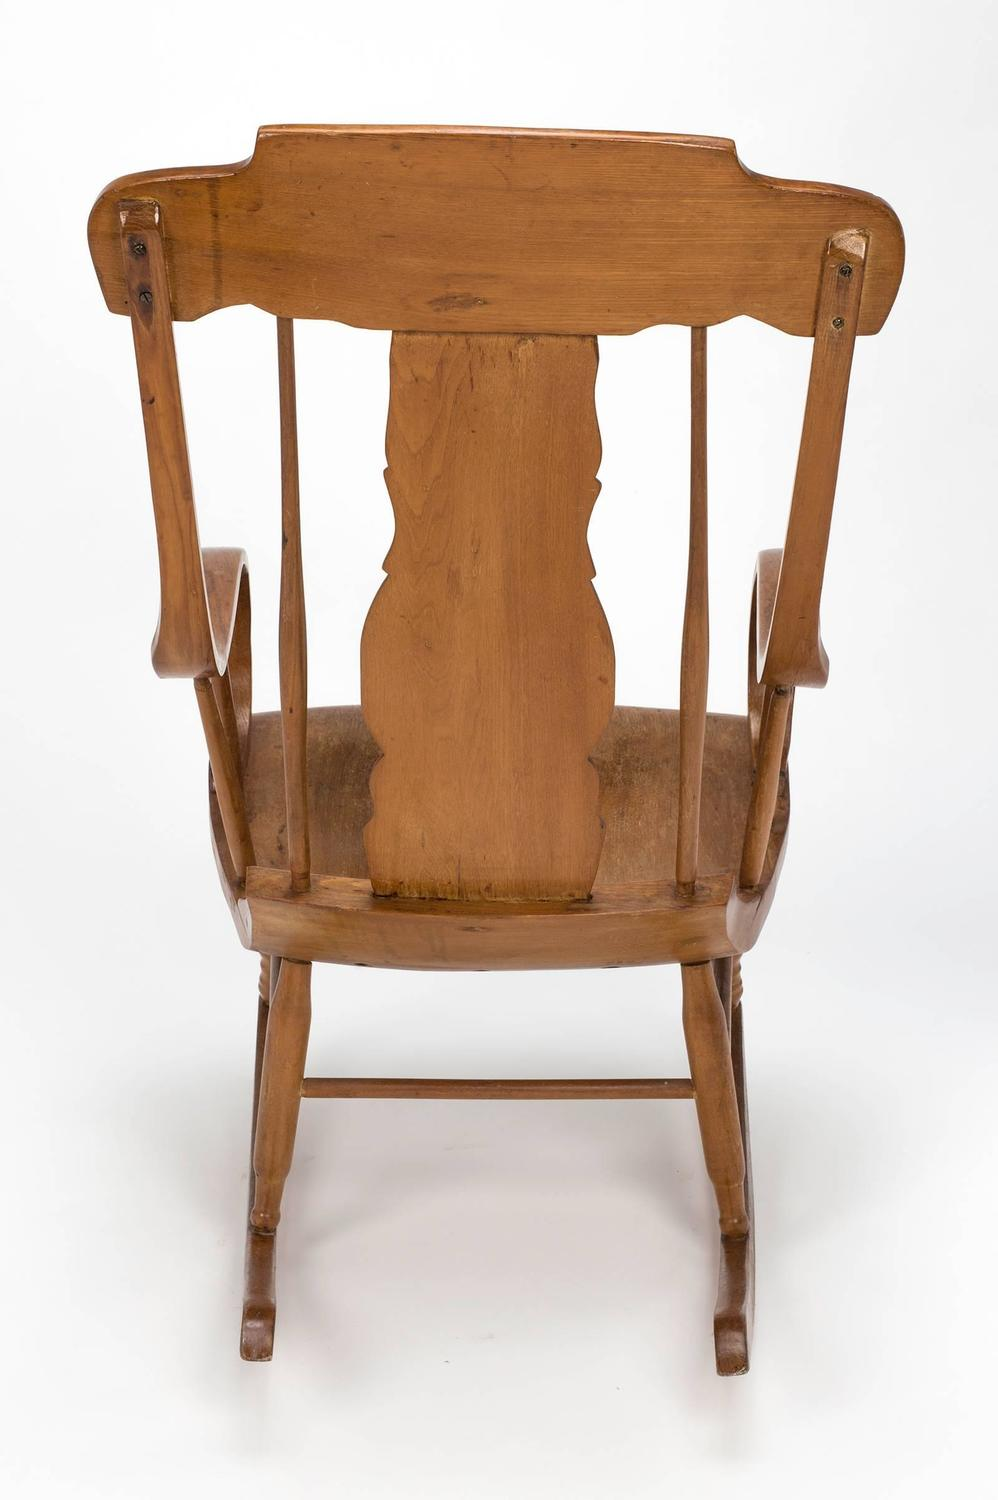 Swedish Style Rocking Chair For Sale at 1stdibs